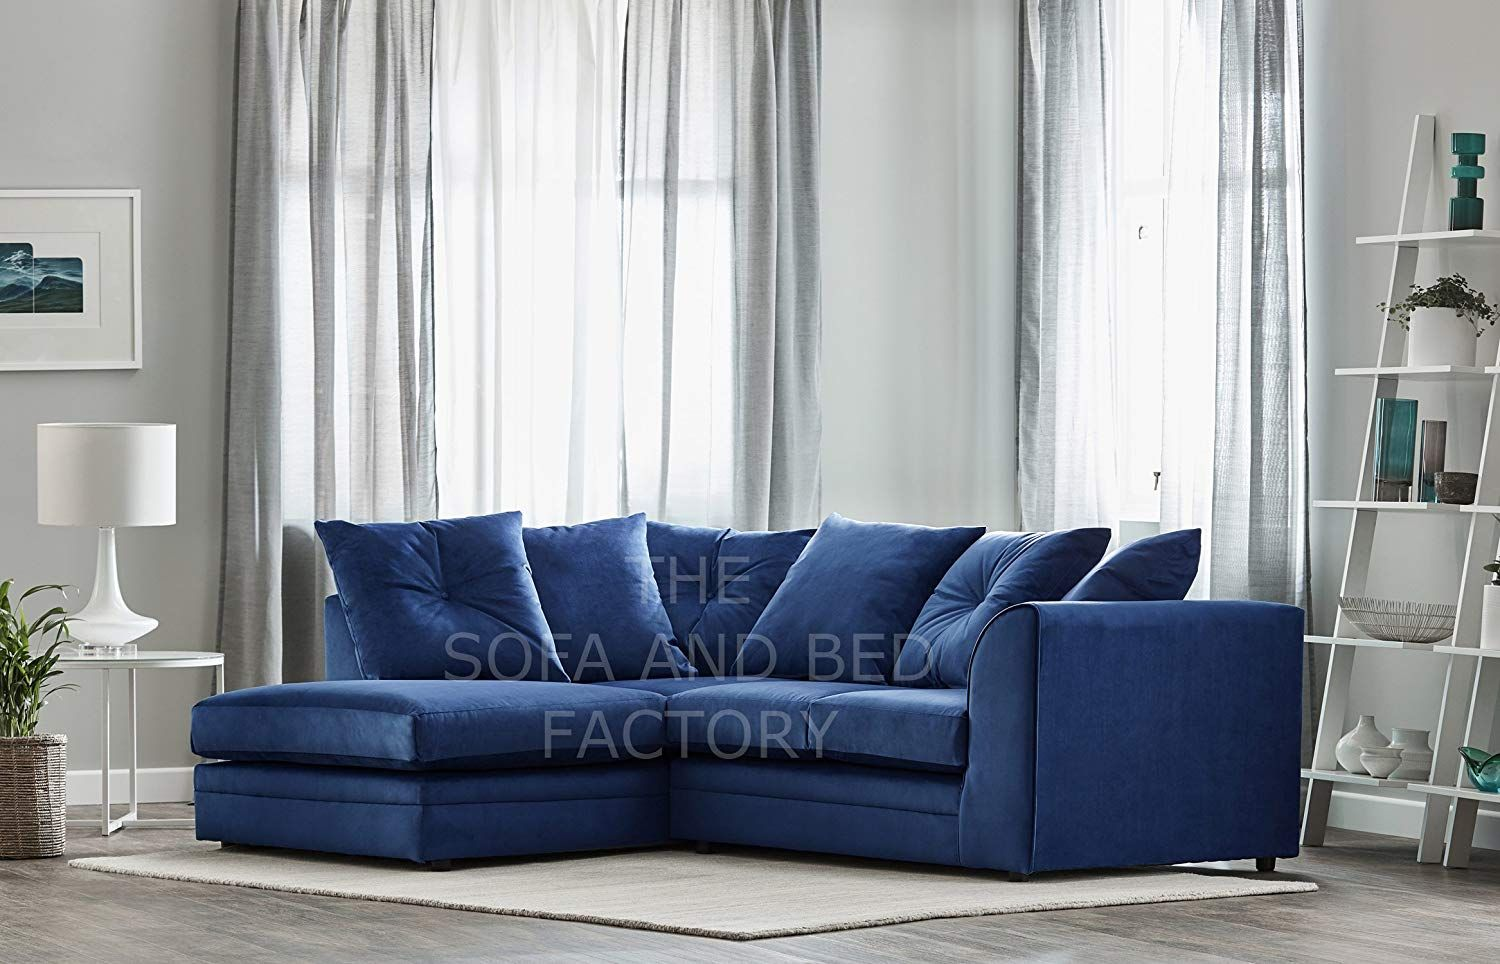 84 Reference Of Blue Corner Sofa Small In 2020 Small Corner Couch Small Corner Sofa Corner Sofa Cheap